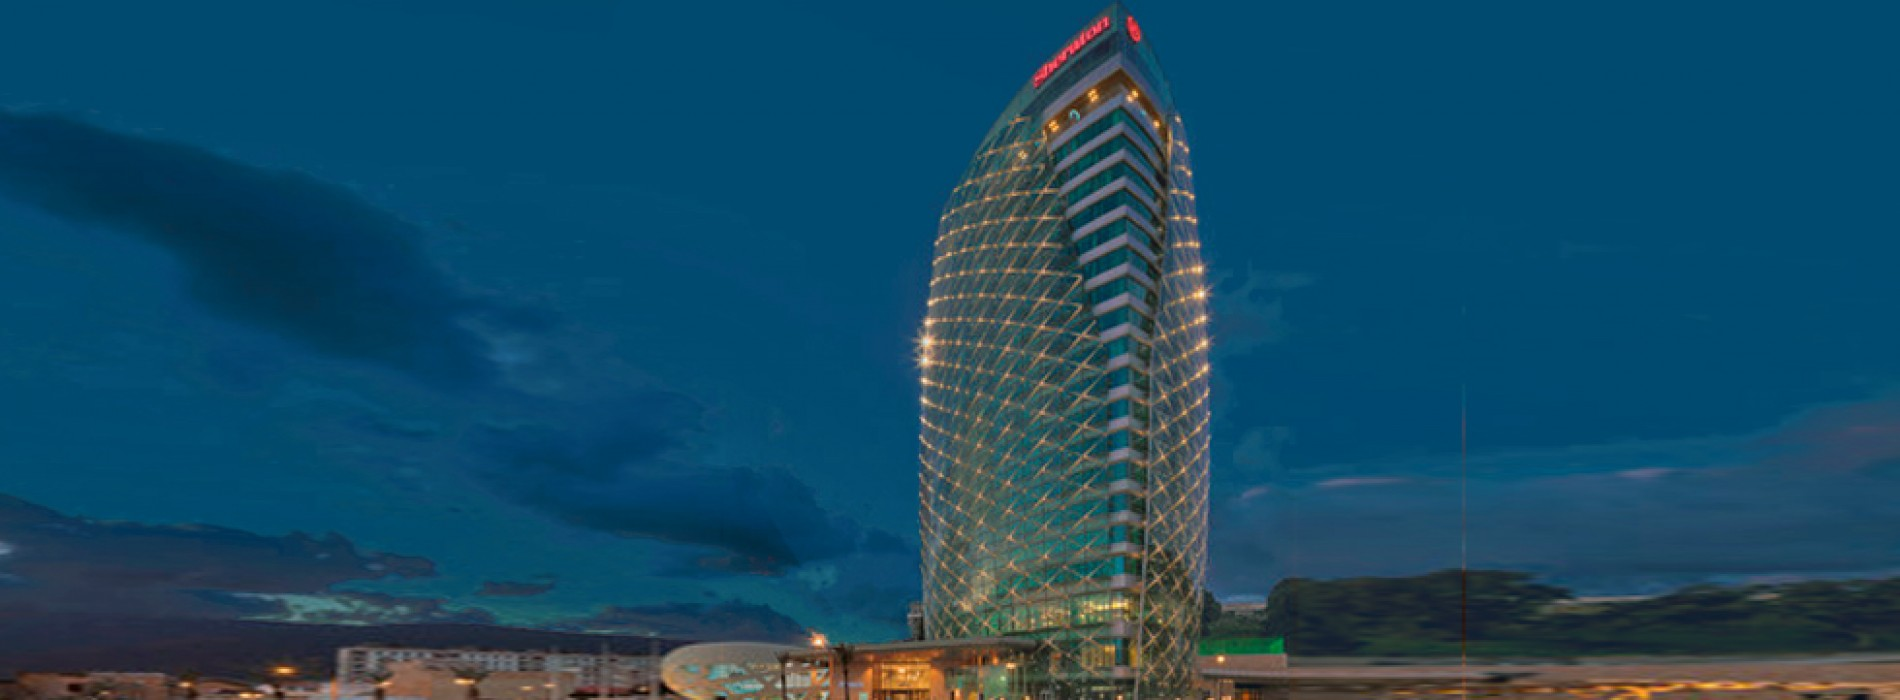 Marriott International expands presence in Algeria with opening of Sheraton Annaba